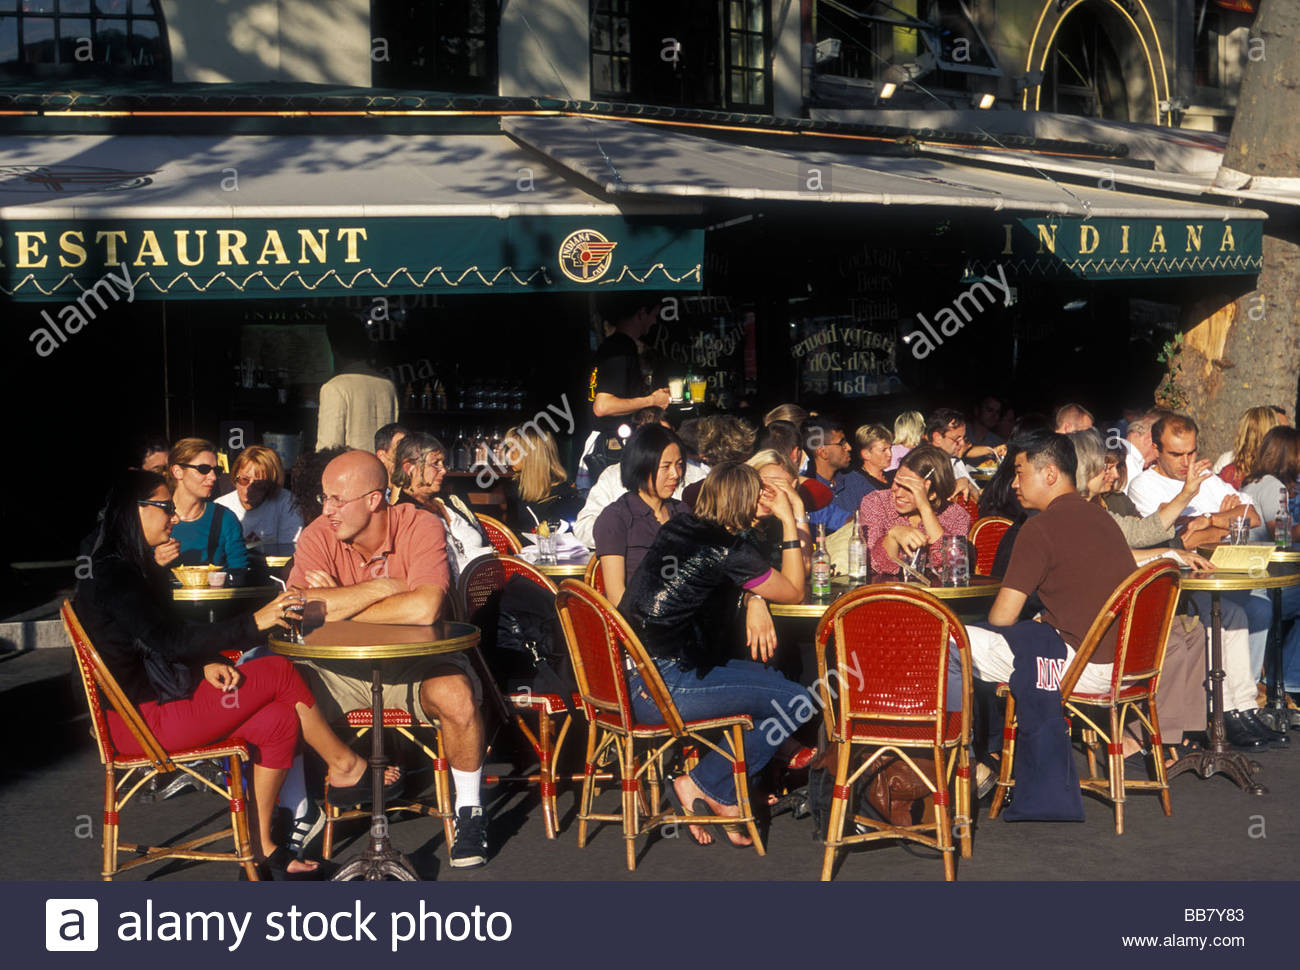 french people tourists eating indiana bastille restaurant french food BB7Y83